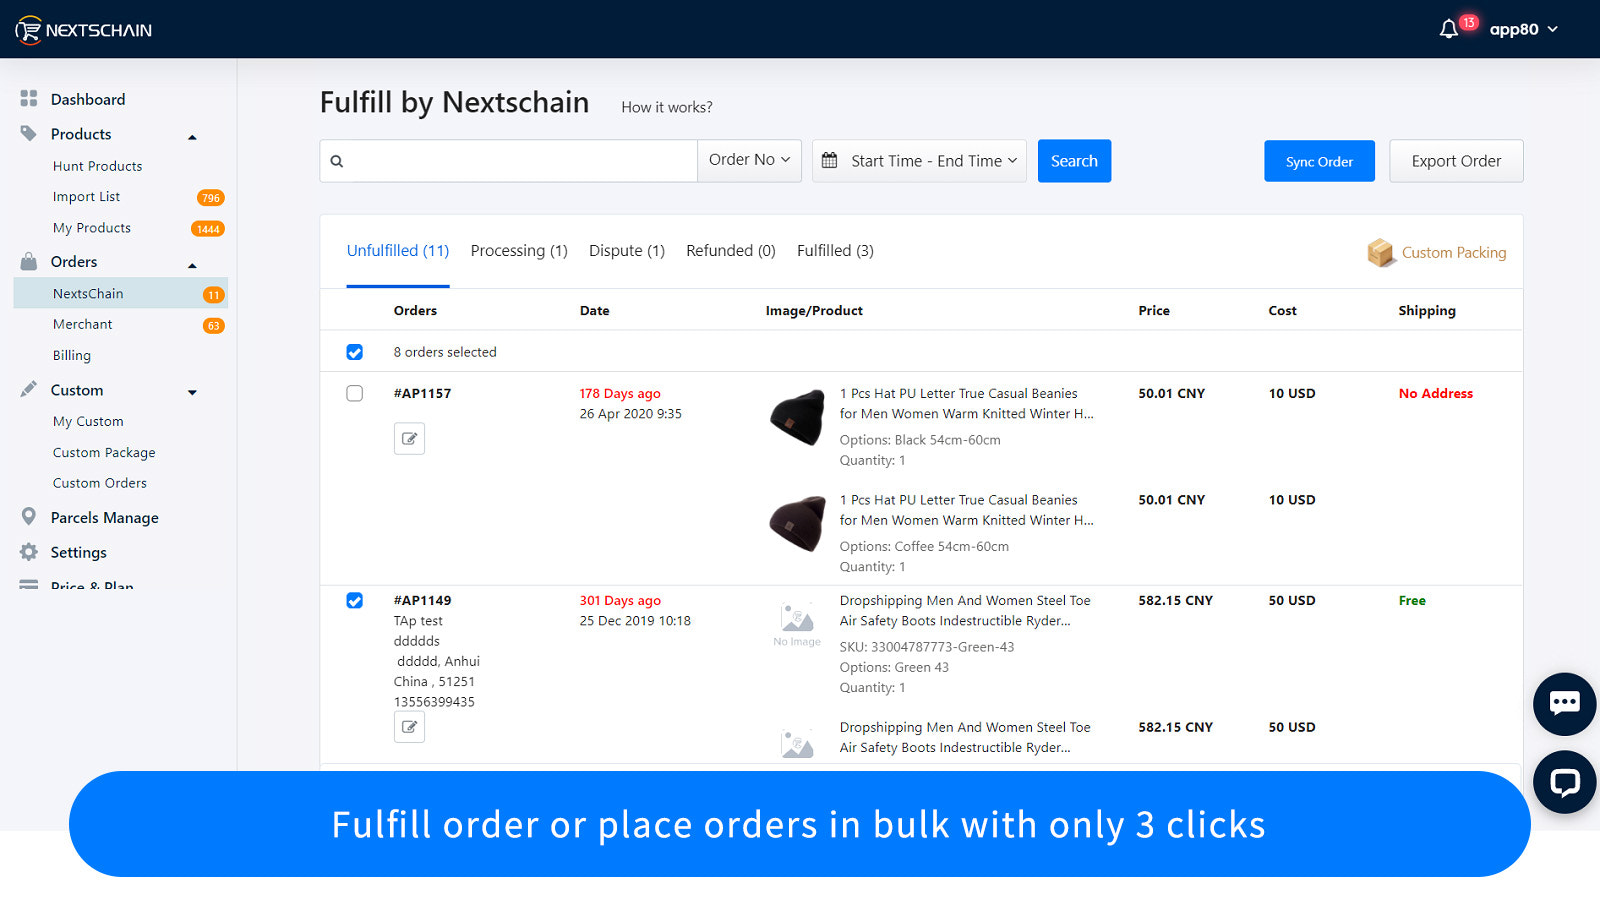 Fulfill order or place orders in bulk with only 3 clicks